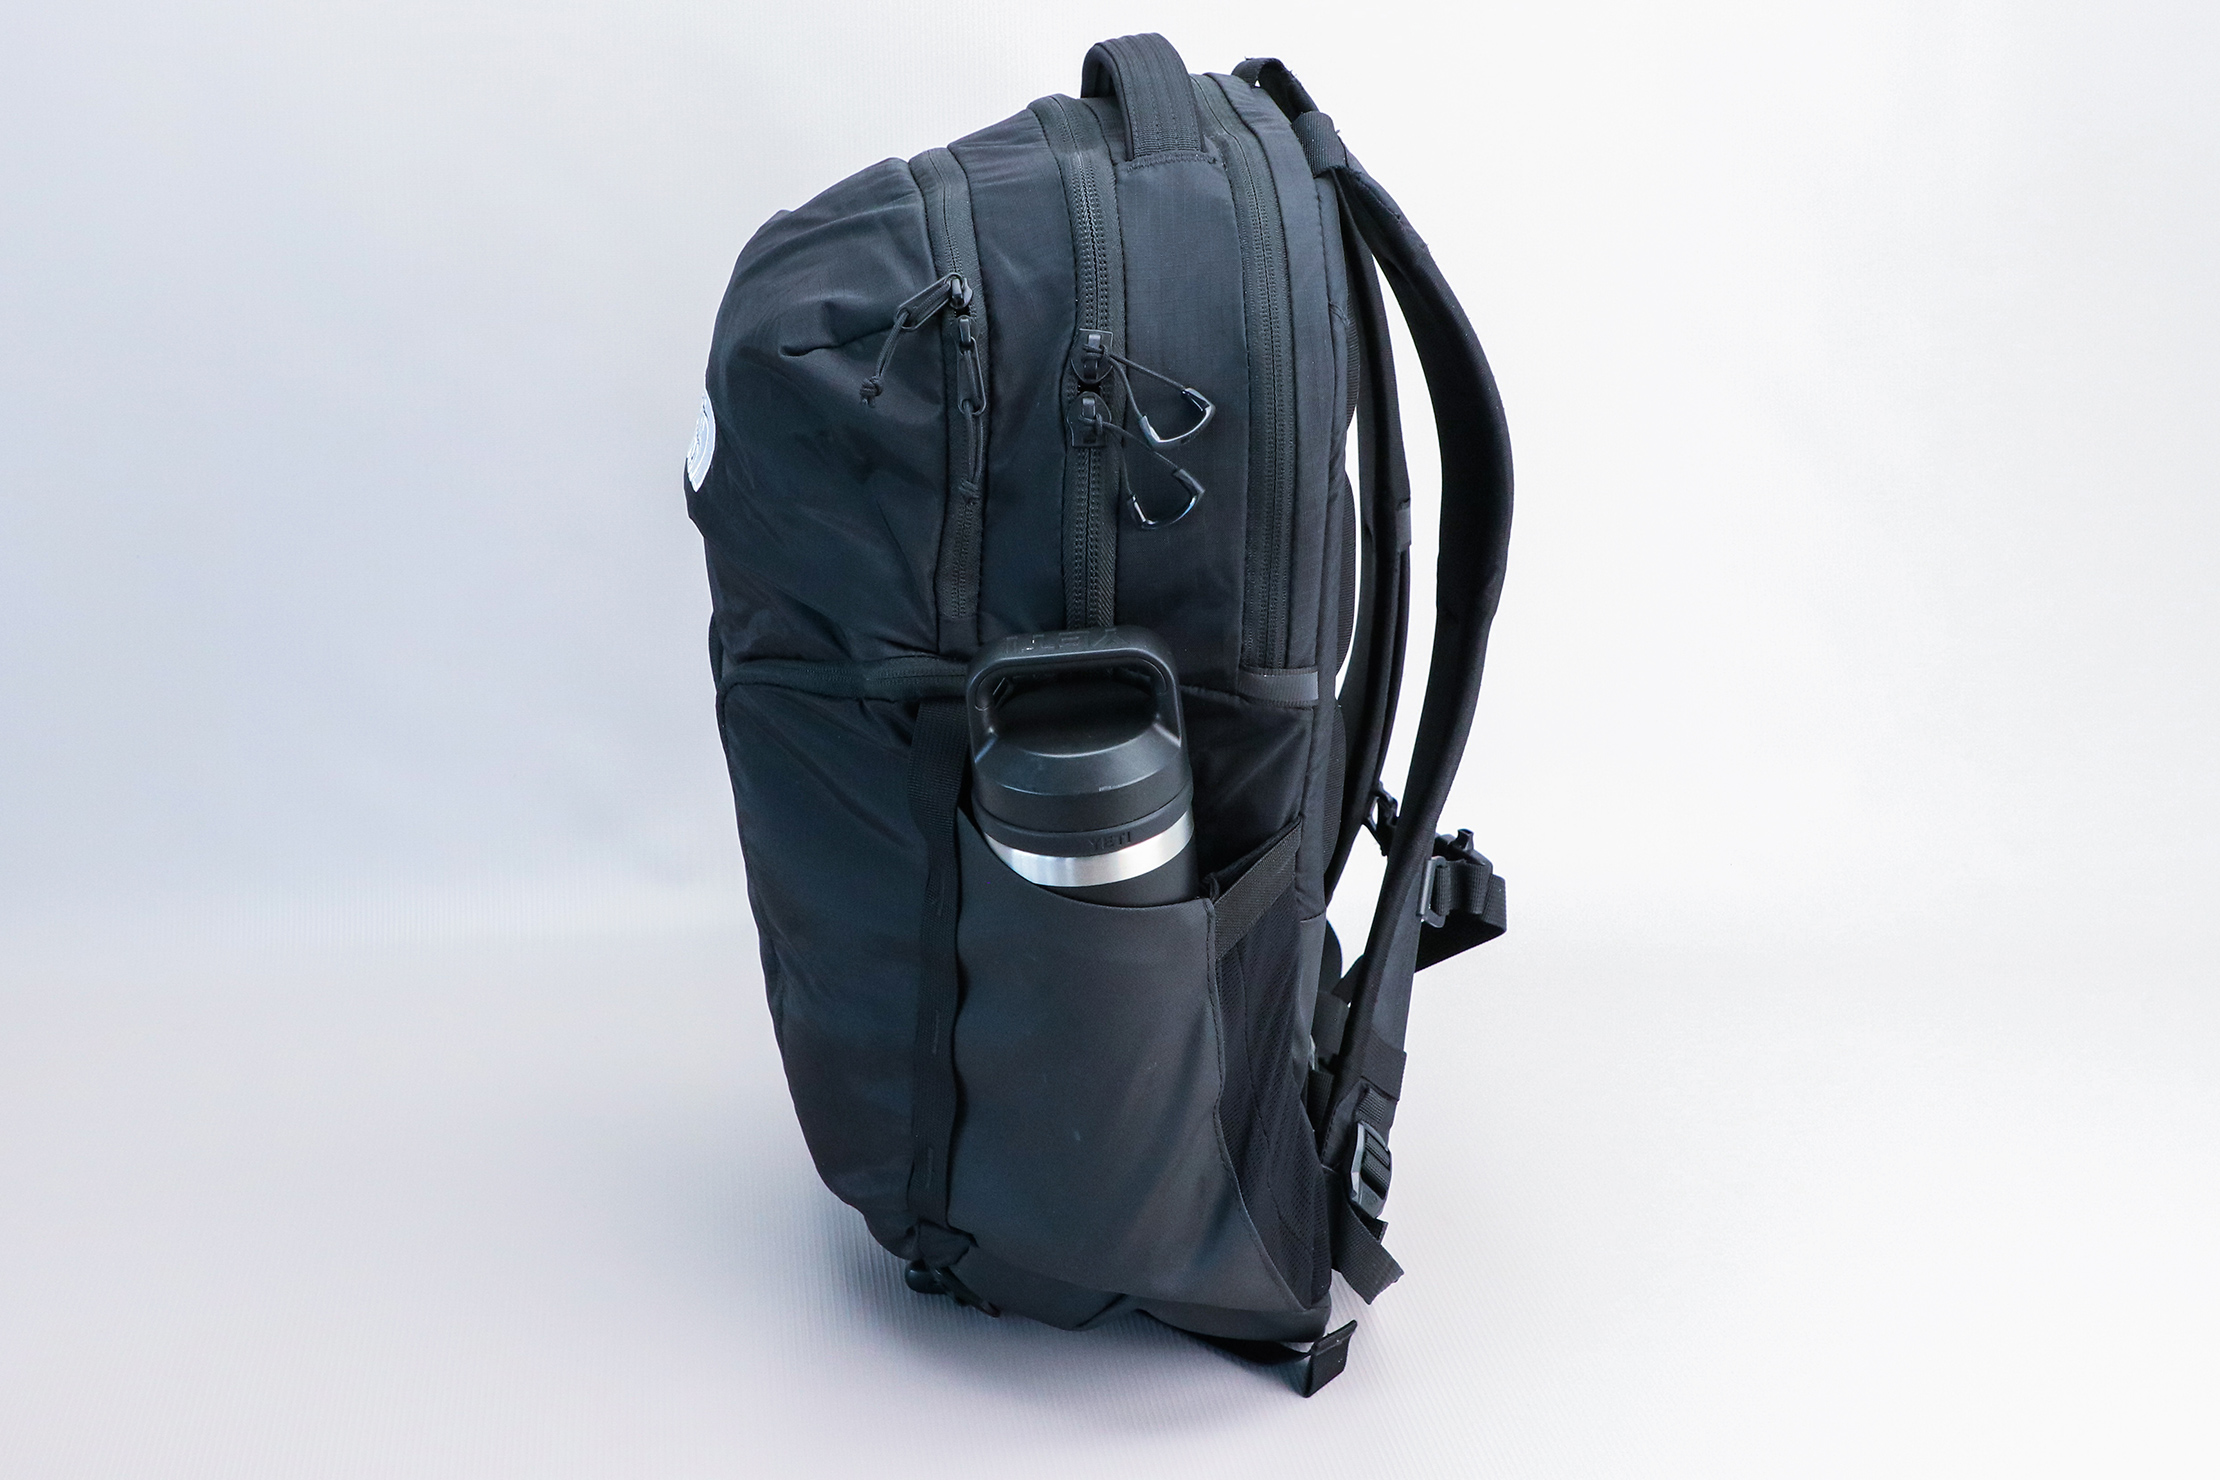 The North Face Surge Backpack water bottle pocket